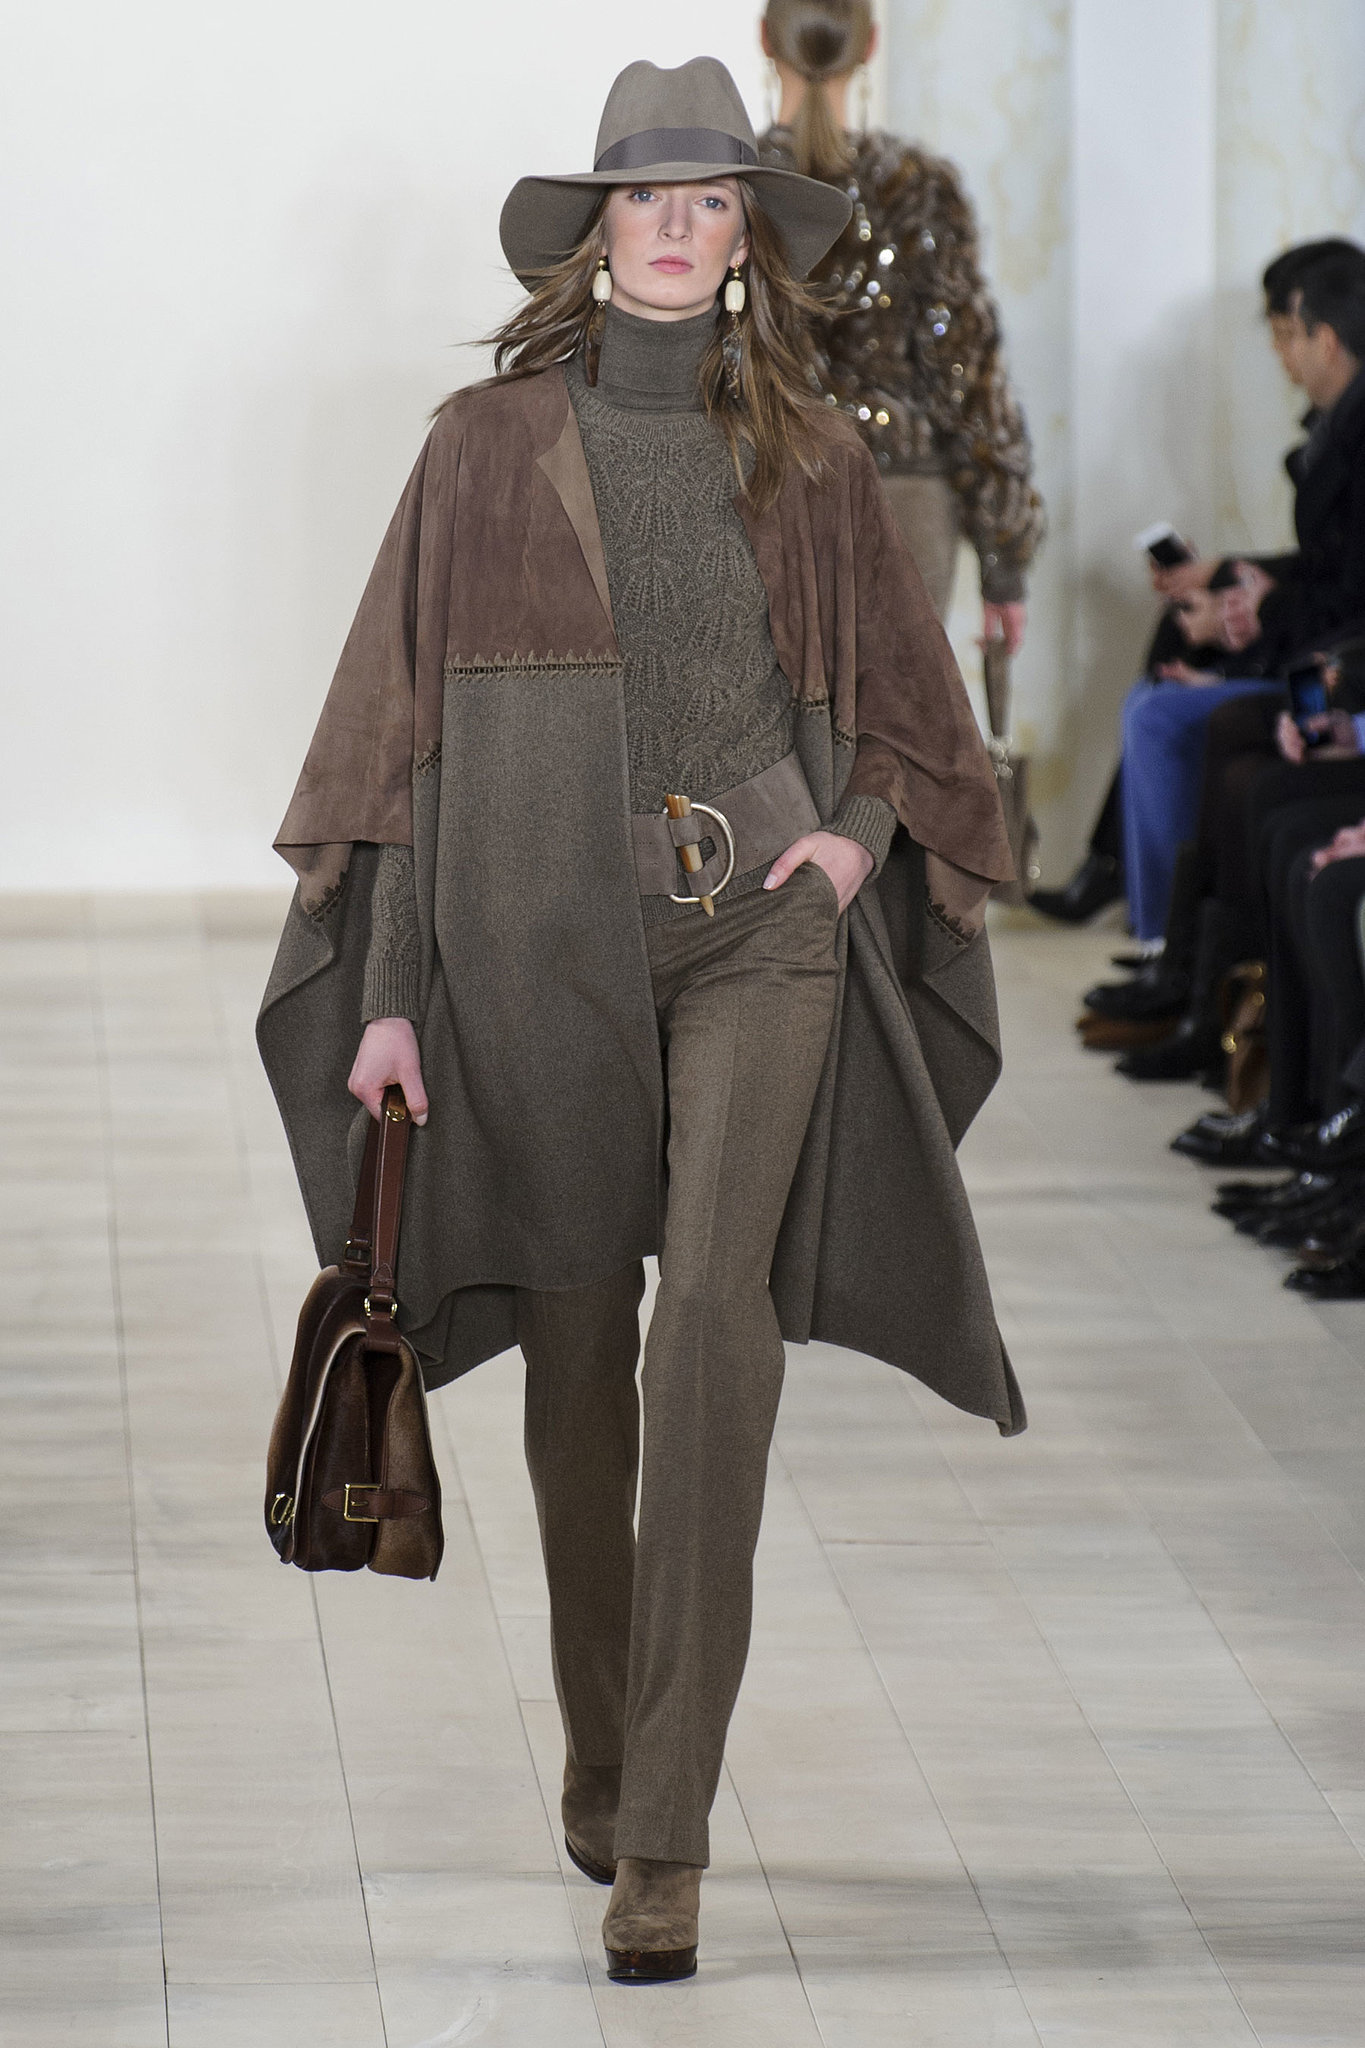 Ralph Lauren Fall 2015 The Top Fall 2015 Trends From New York Fashion Week Popsugar Fashion